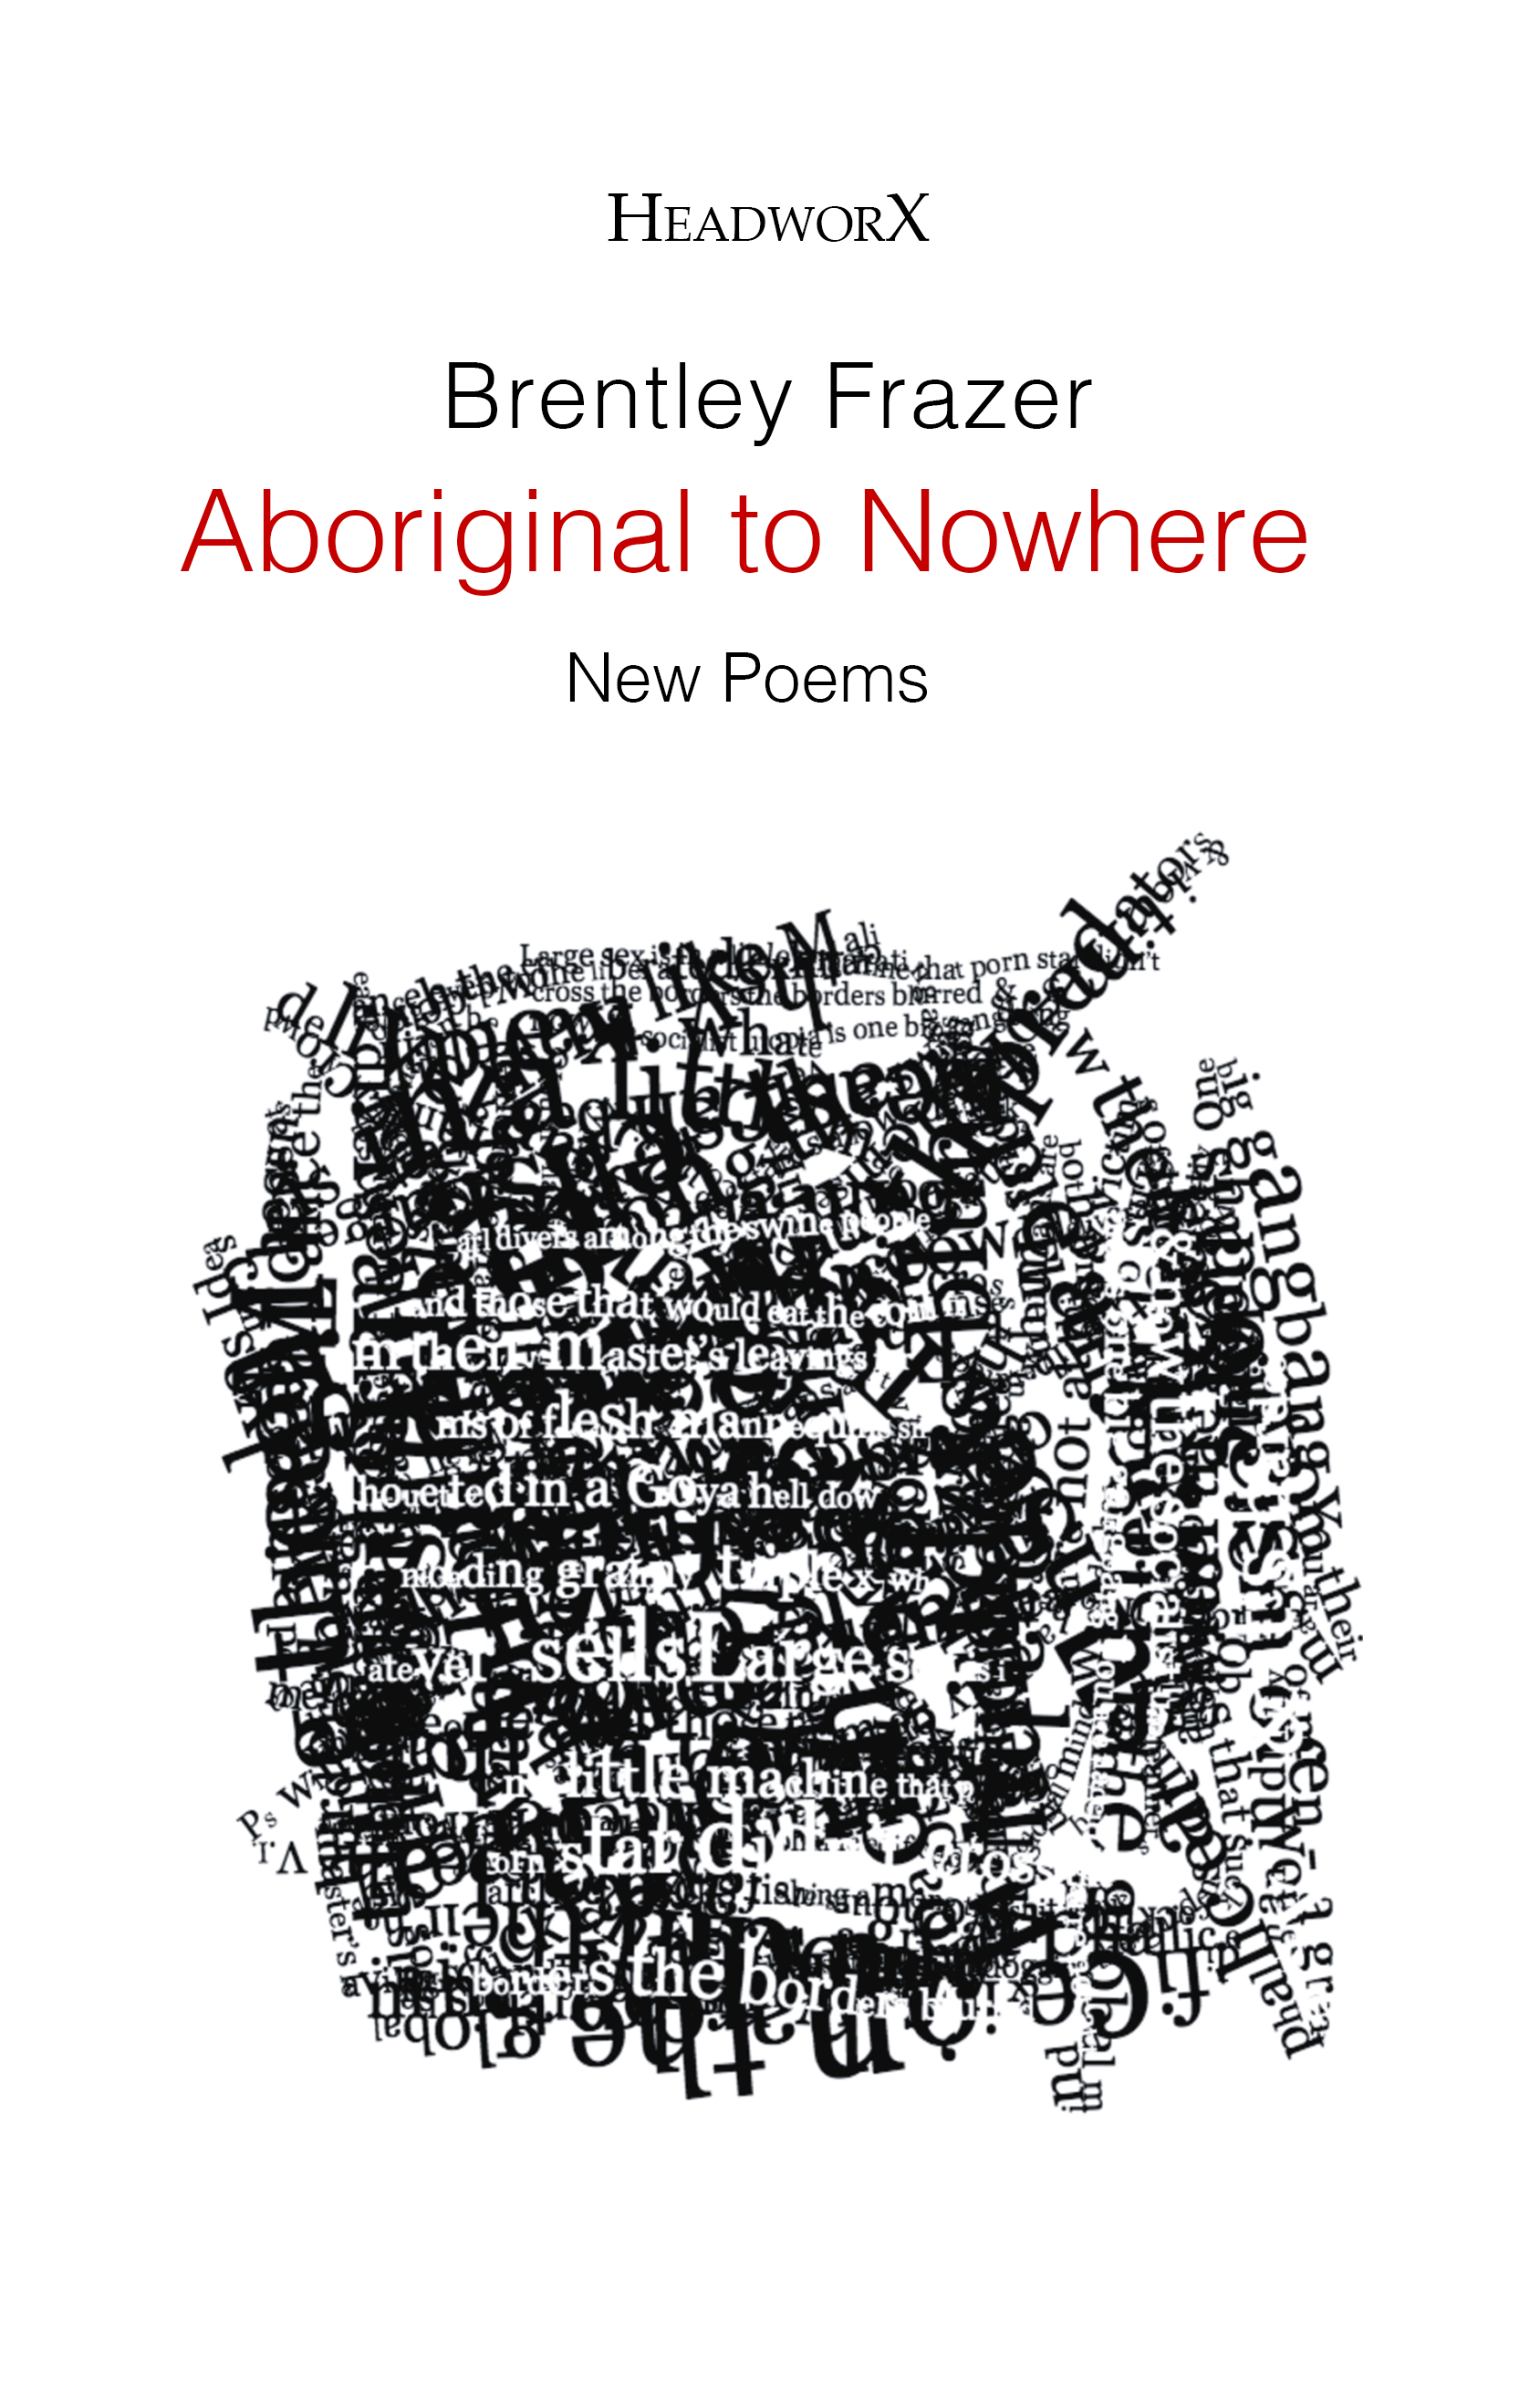 Aboriginal to Nowhere: new poems by Brentley Frazer (HeadworX, 2016)